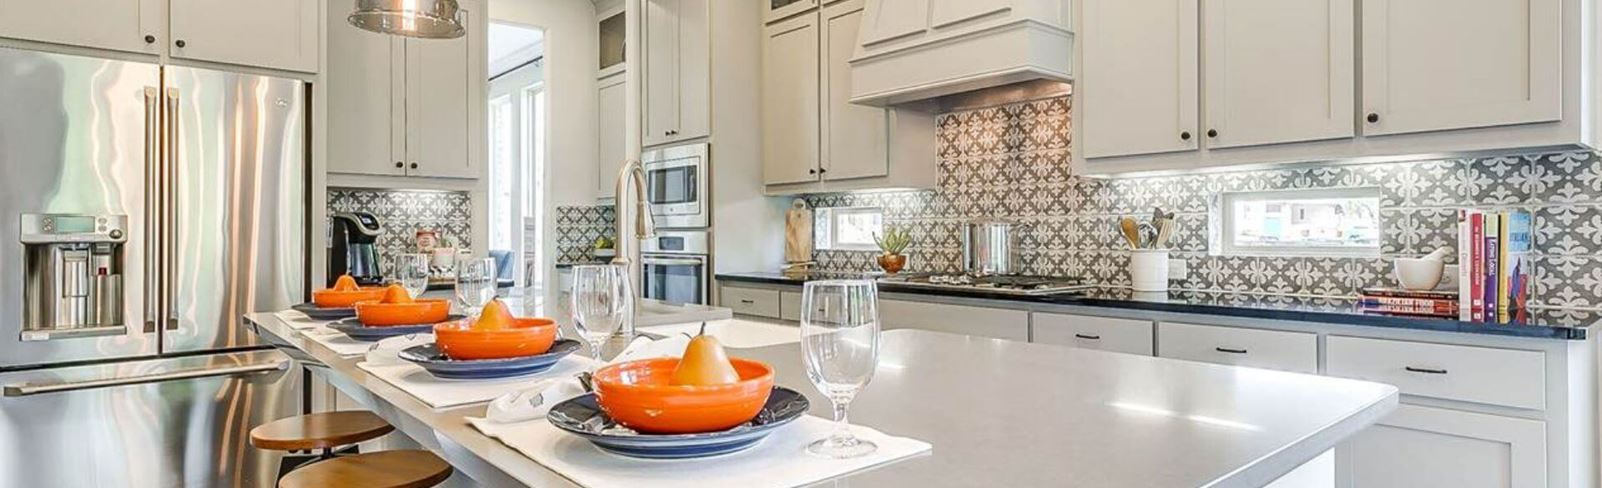 M/I Homes model kitchen at Canyon Falls, TX